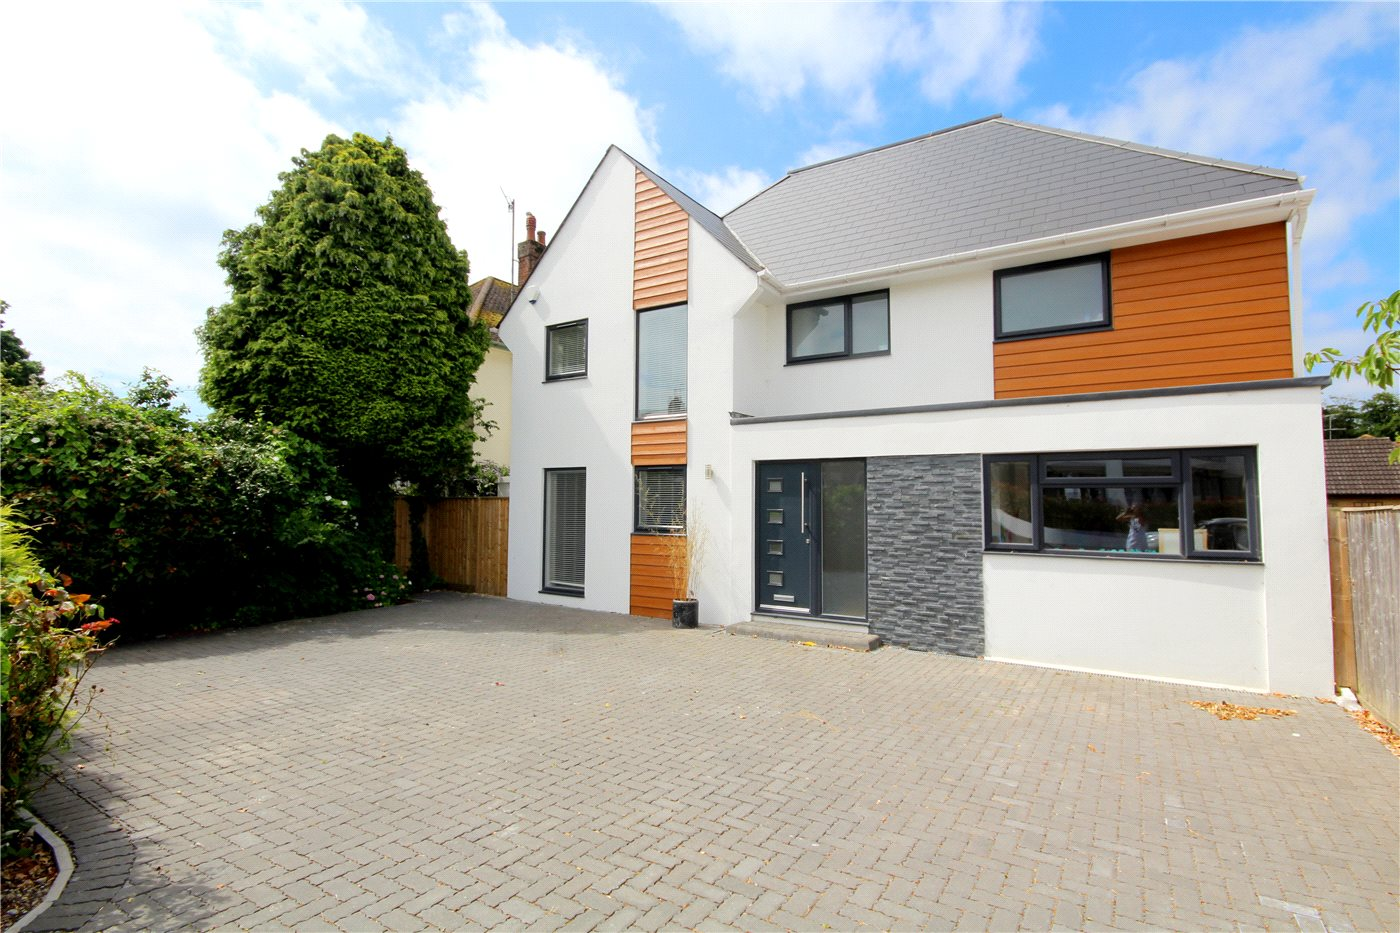 4 Bedrooms Detached House for sale in Sandbanks Road, Lilliput, Poole, BH14